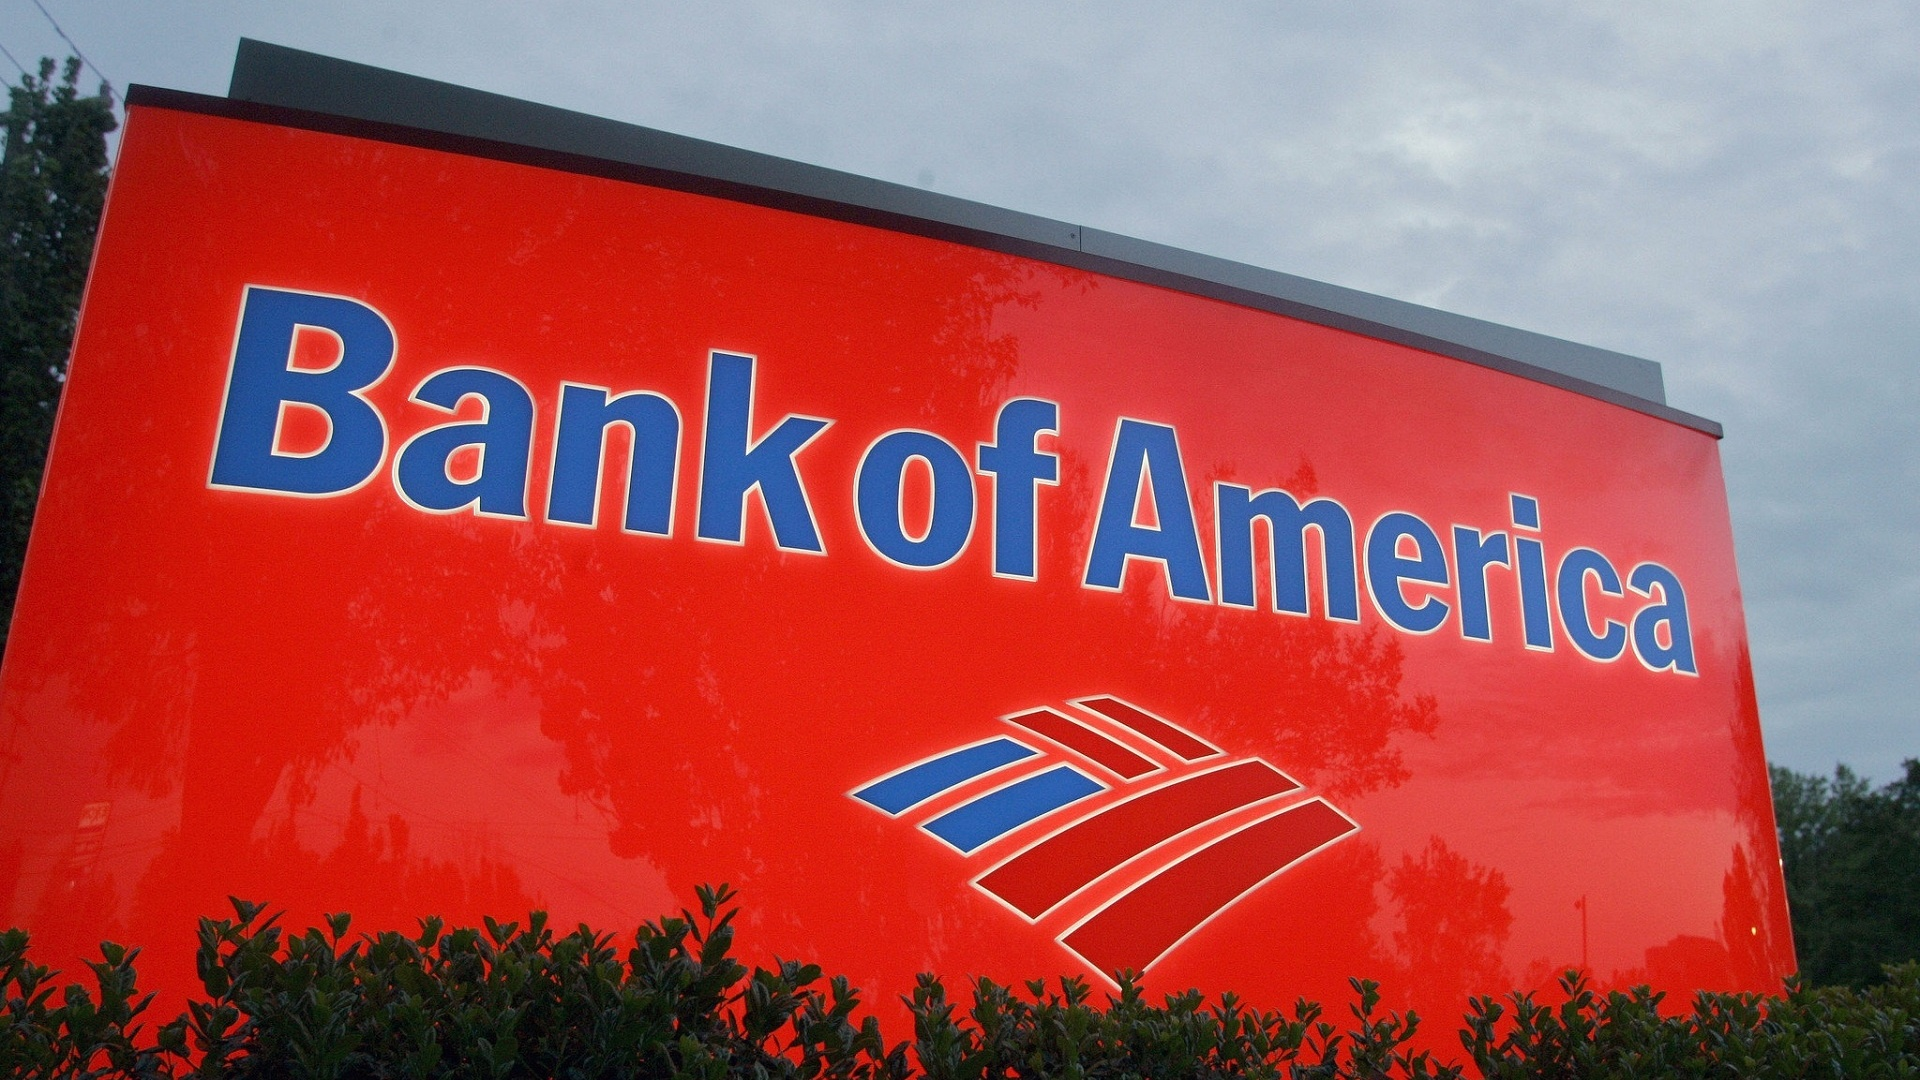 1920x1080 Brands Bank Of America Bank Of America Backgrounds 1920x1080